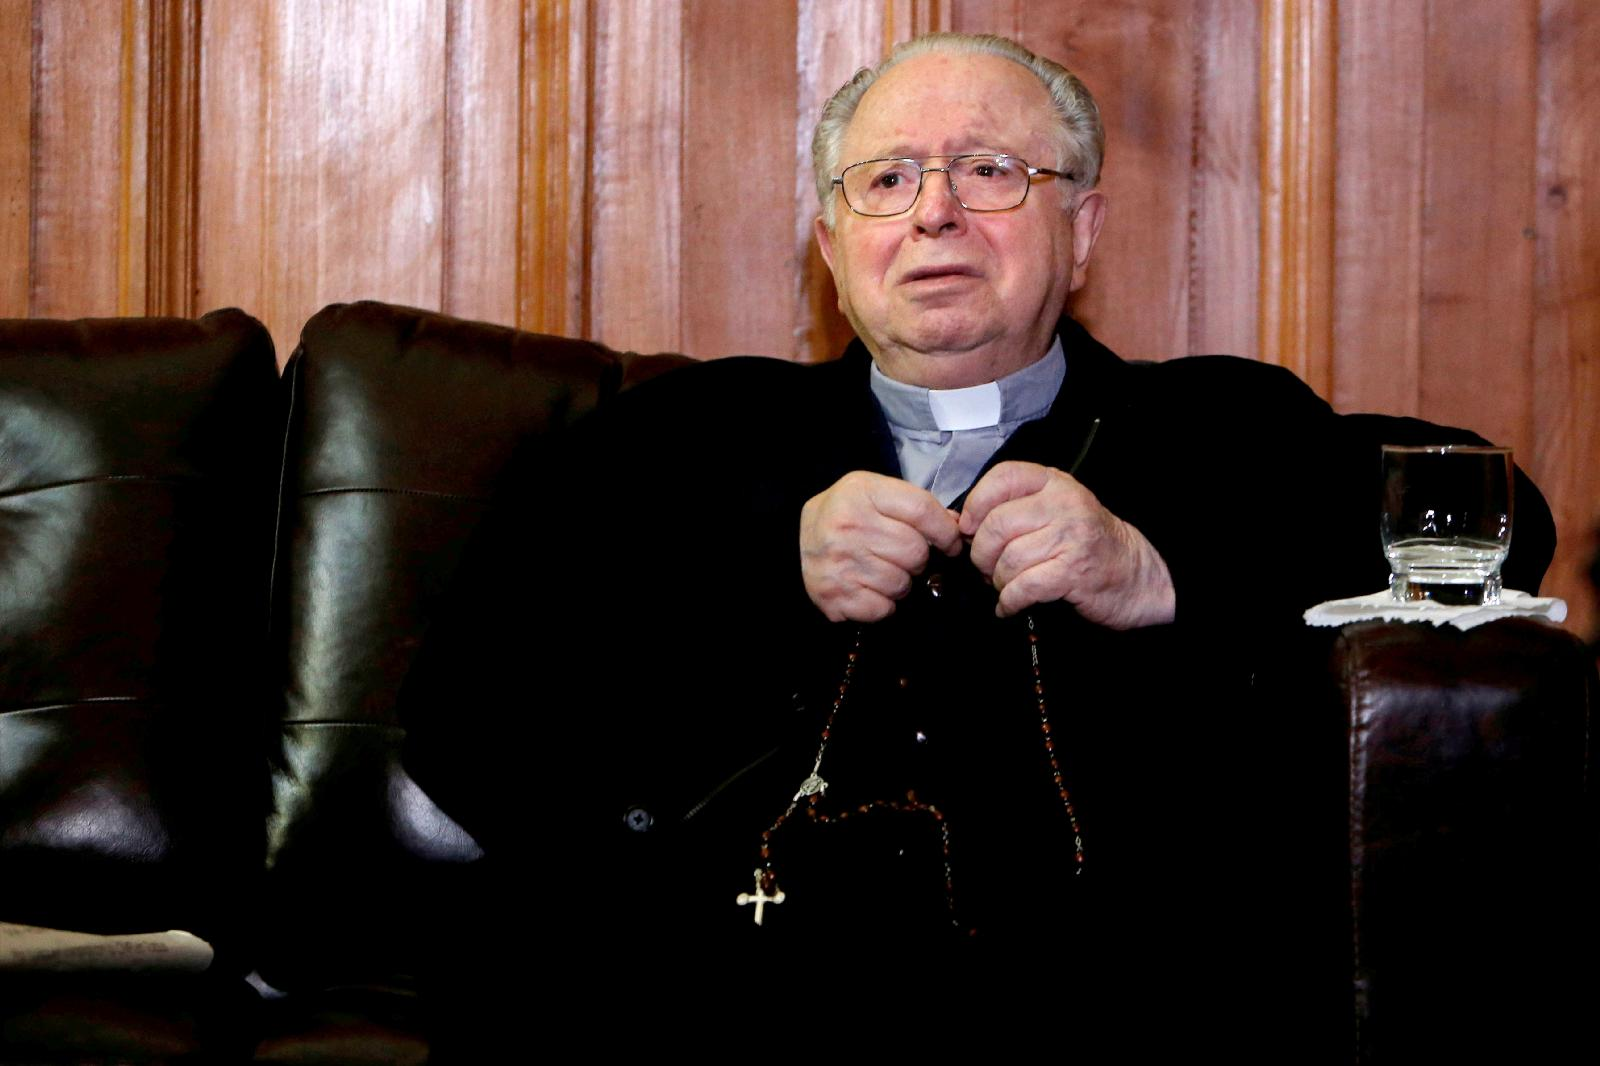 Chilean Fernando Karadima, the defrocked priest at the heart of a sexual abuse case that rocked Chile's Catholic Church, died of natural causes July 25, 2021. He was 90. He is pictured with a rosary inside the Supreme Court building in Santiago Nov. 11, 2015. (CNS photo / Carlos Vera, Reuters)